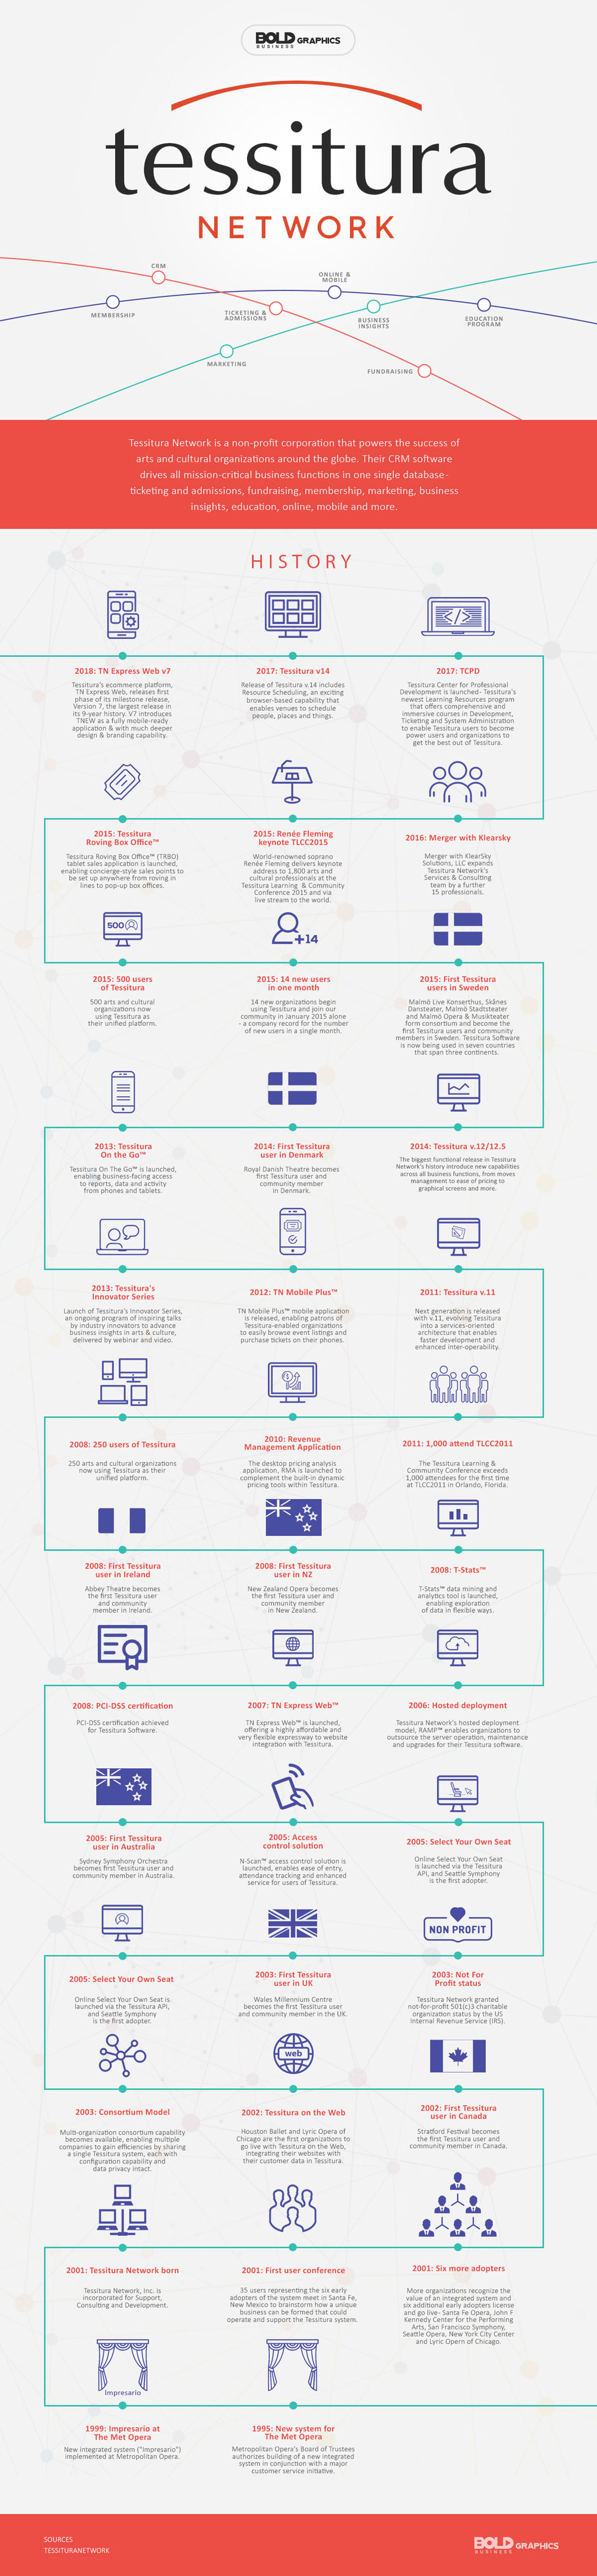 Tessitura Network,crm software,crm software for small business,online and mobile services,business insights,education program,marketing services,fundraising services,ticketing and admissions services,what is tessitura network,tessitura network infographic